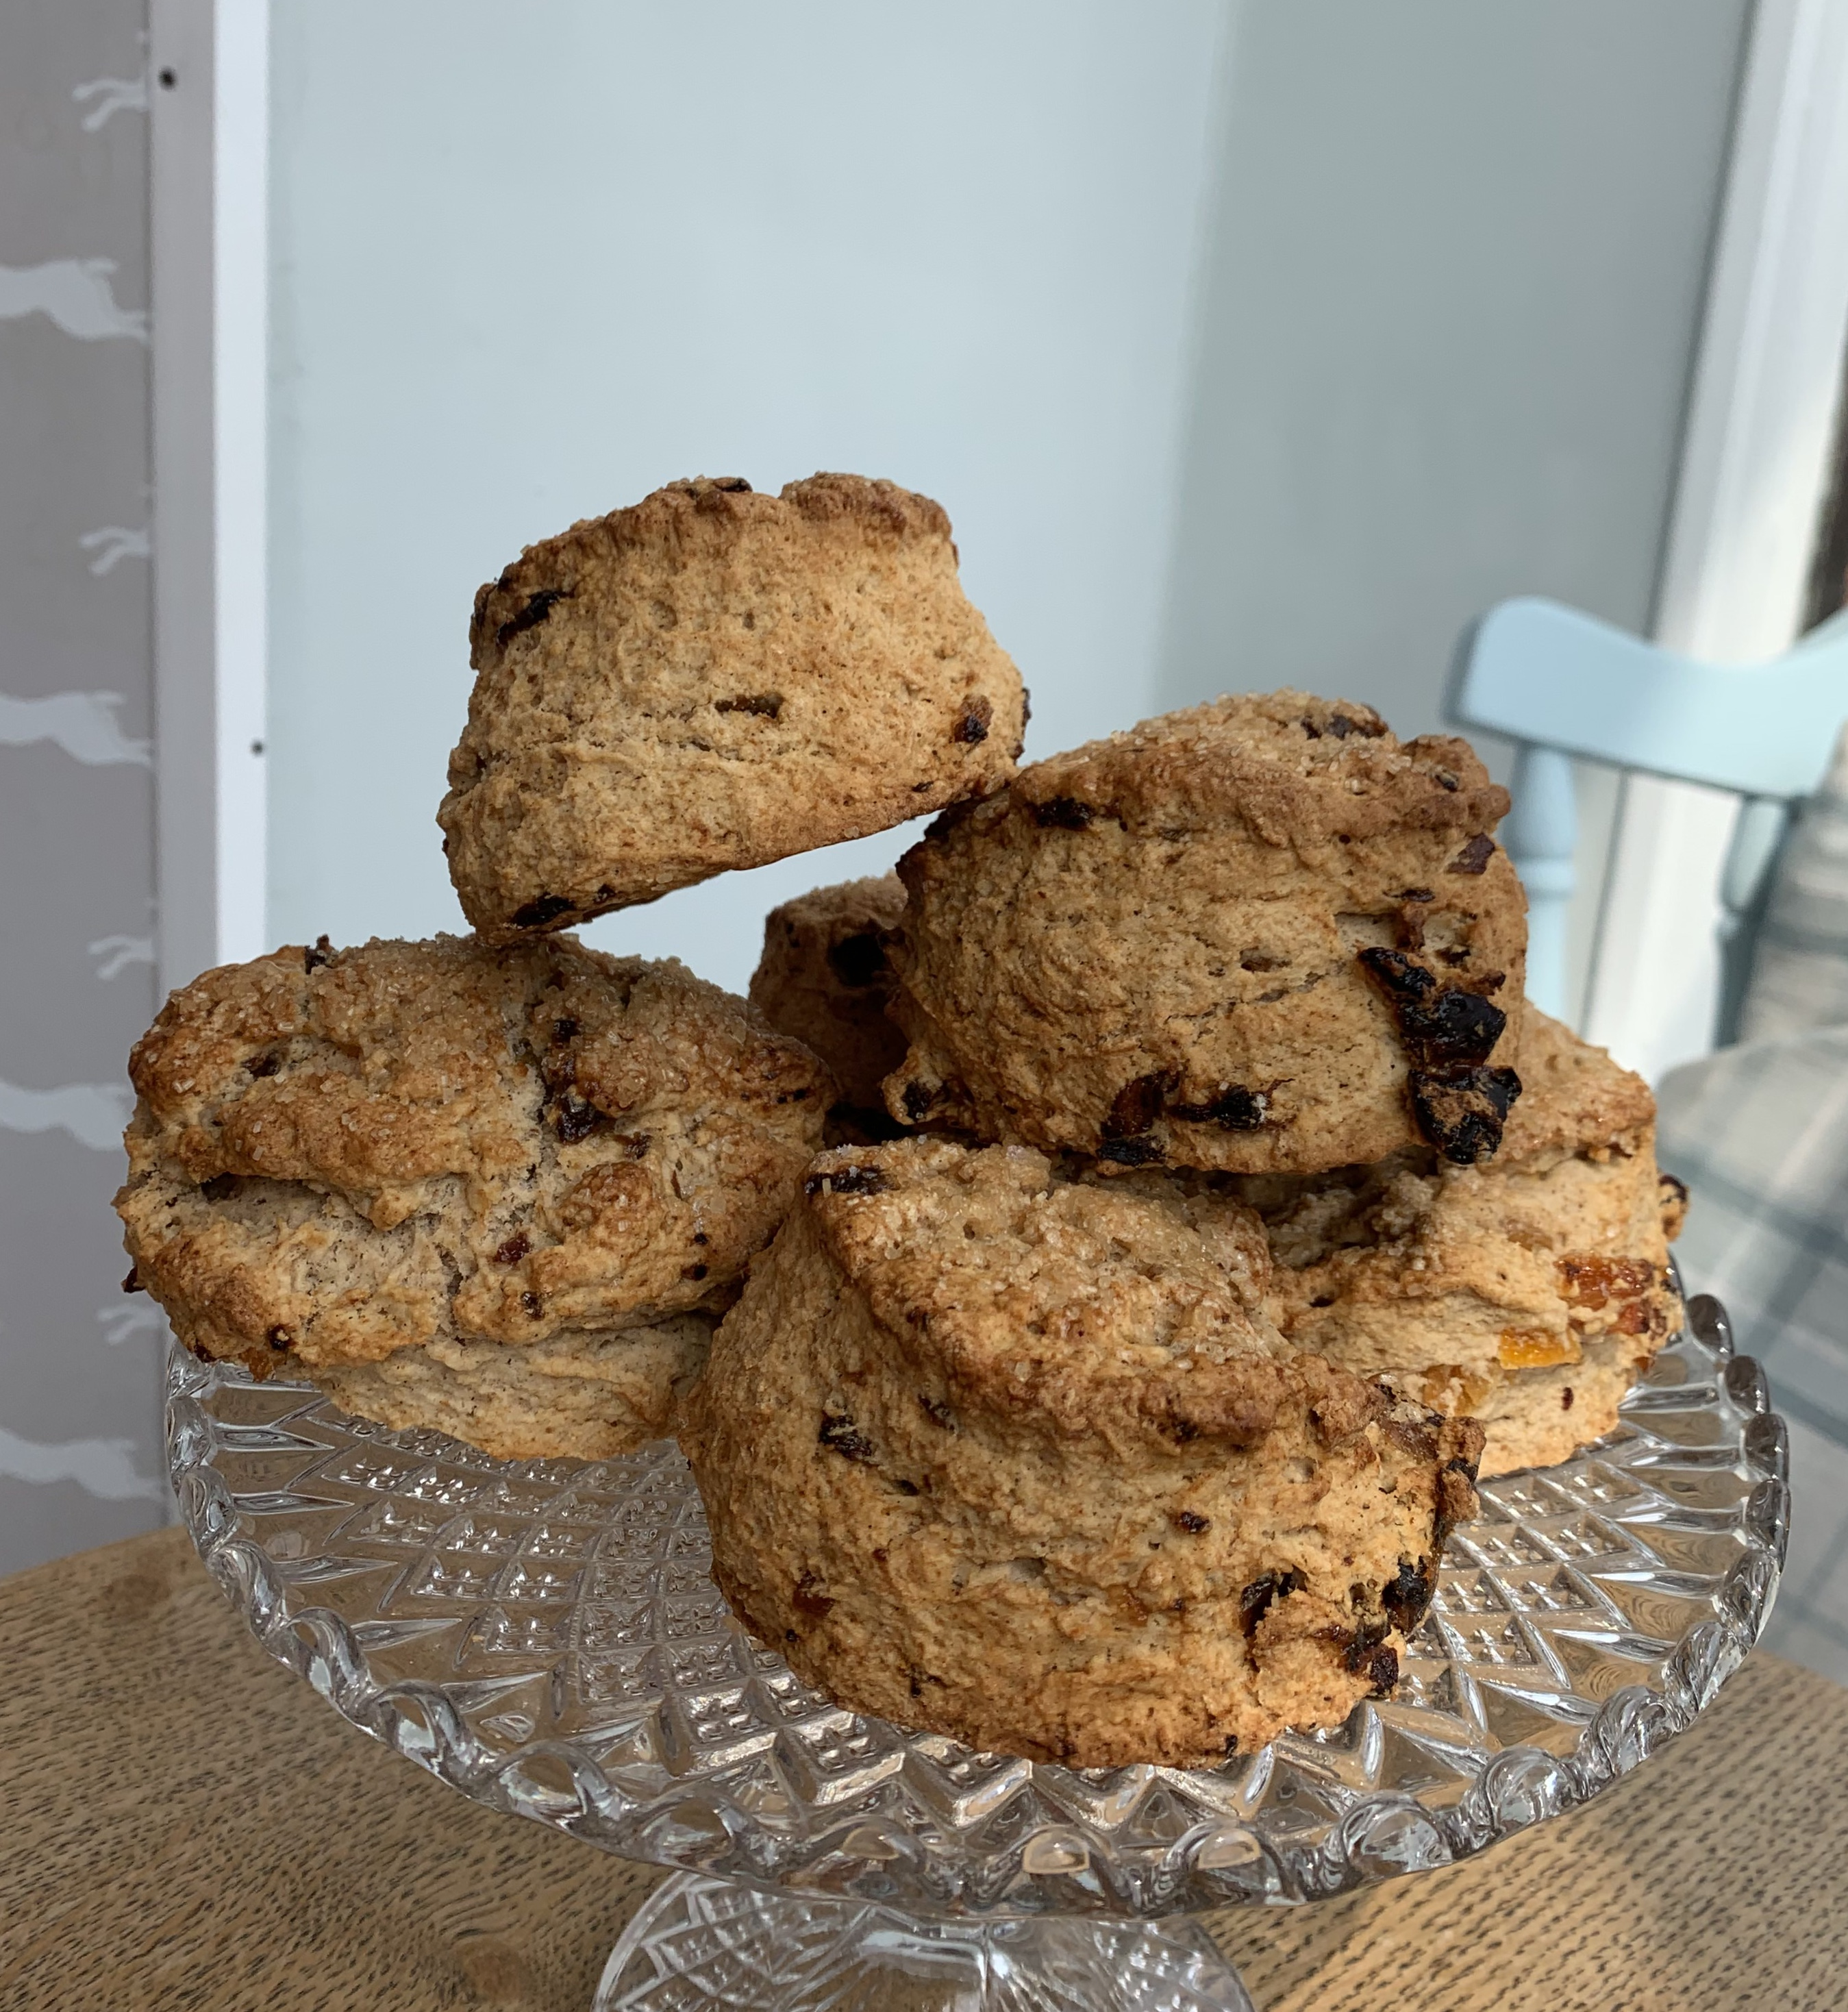 Box of 4 scones - Date and Apricot